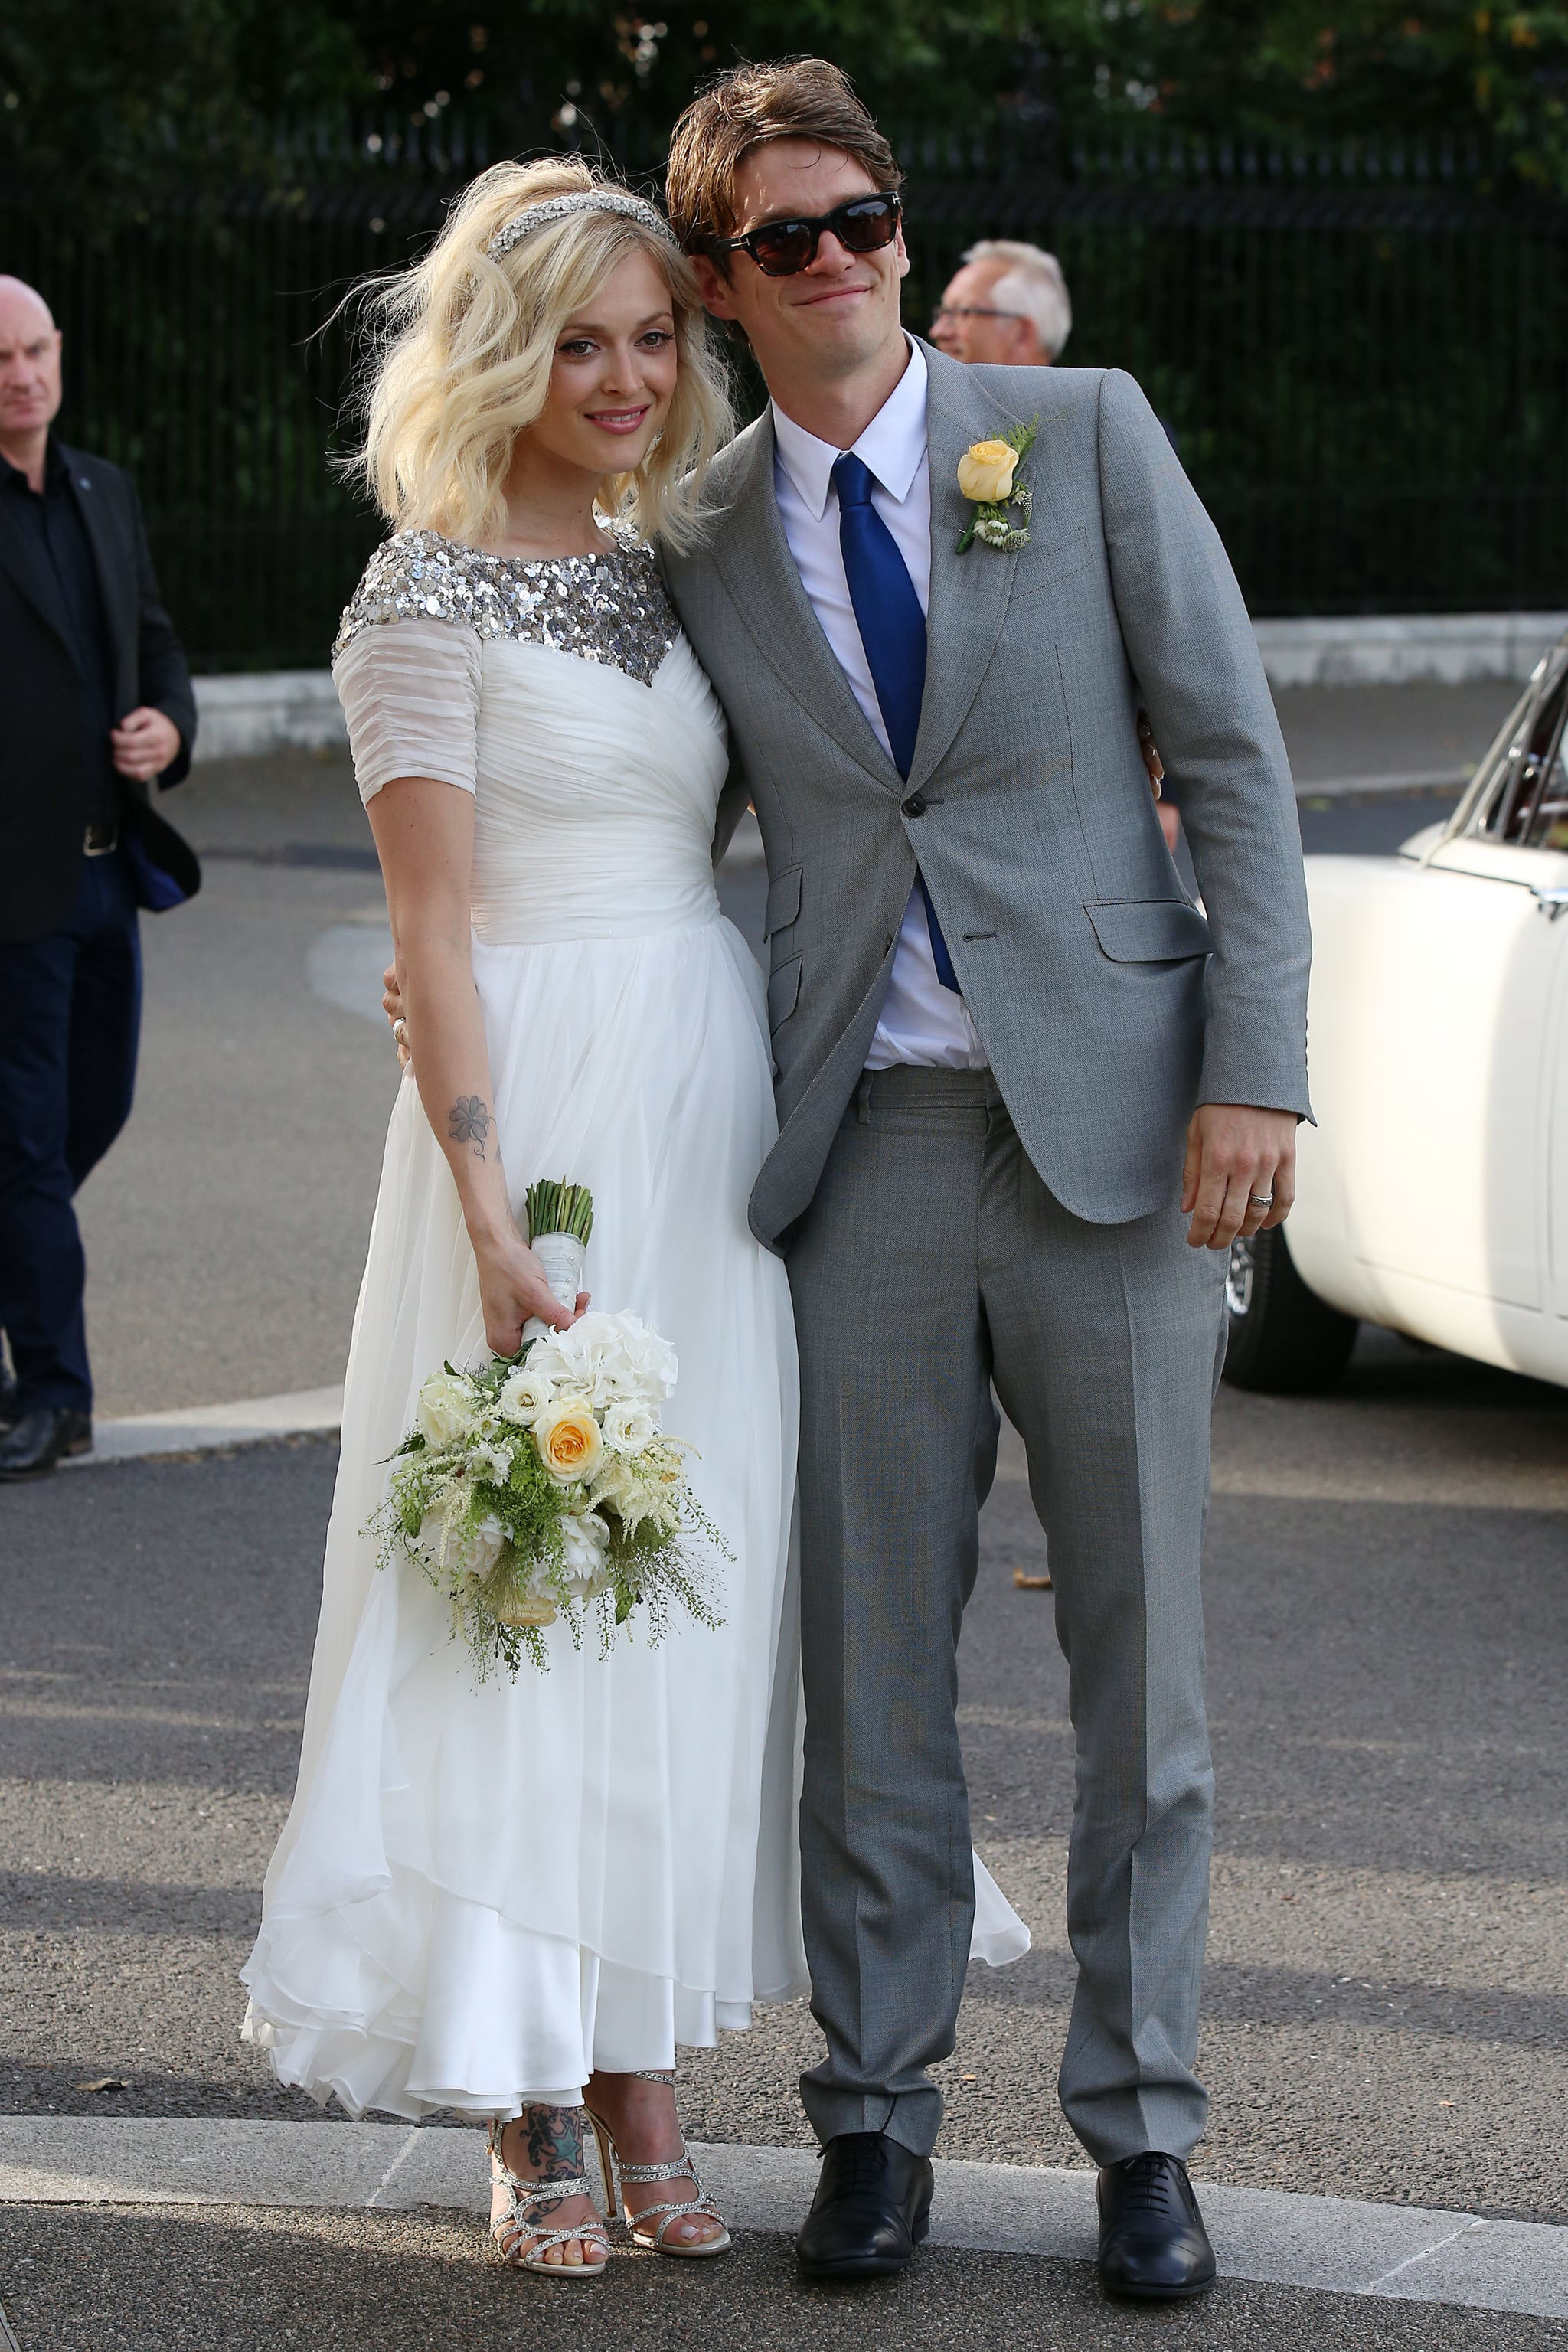 Fearne Cotton marries Jesse Wood in London